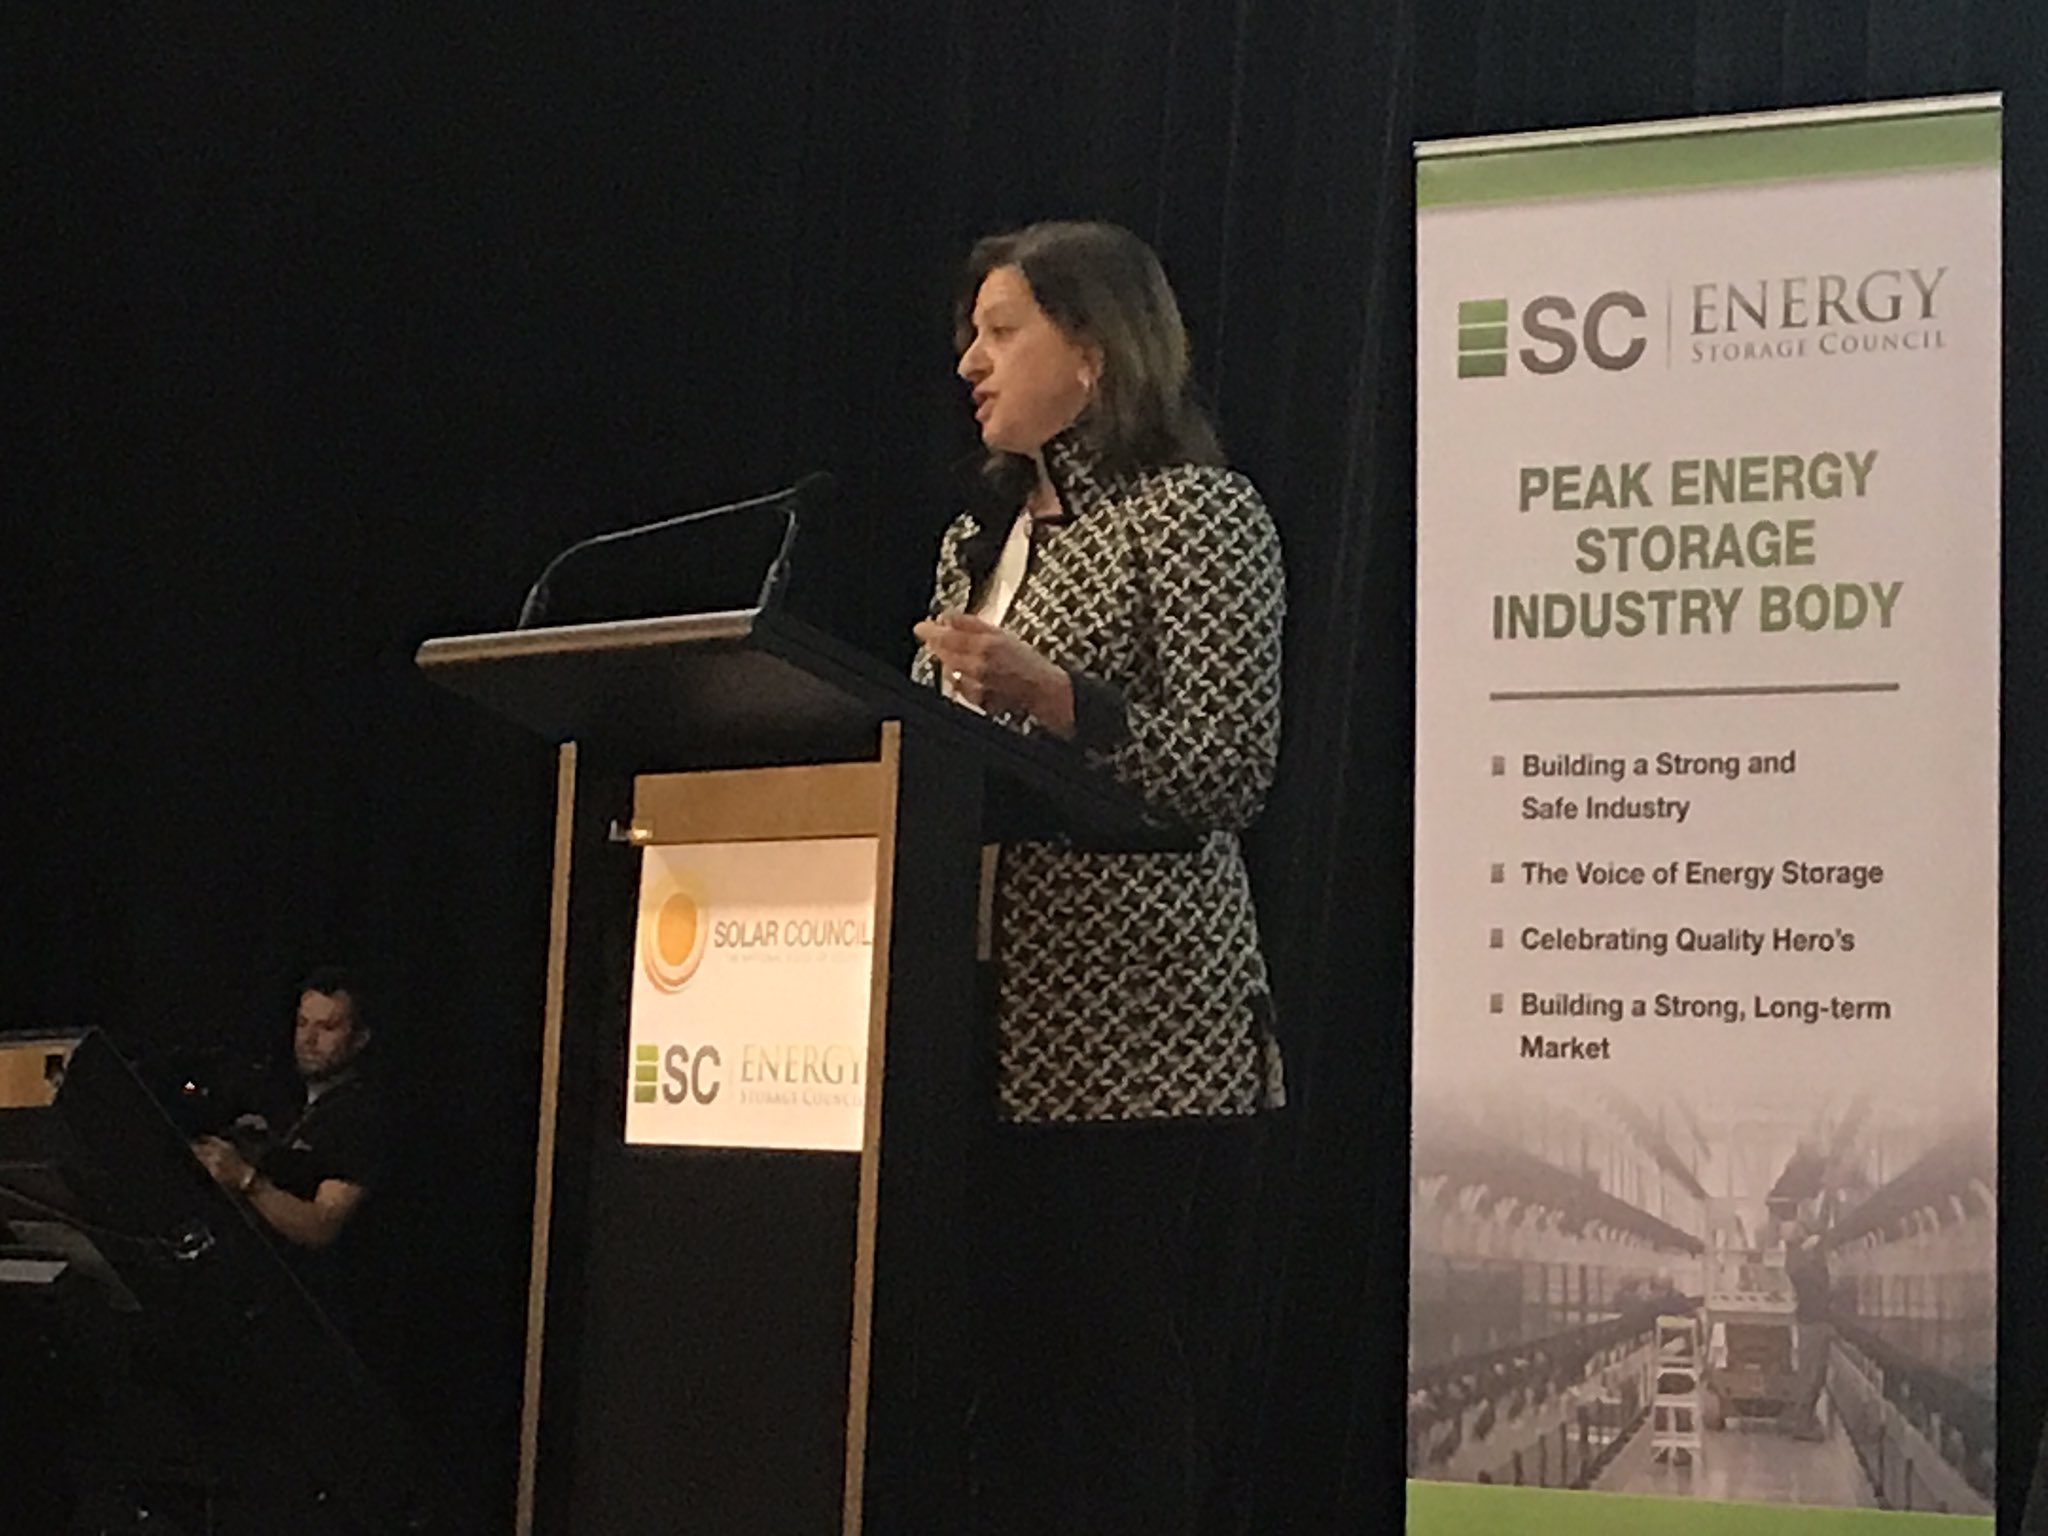 Powerful speech by Audrey Zibelman   @AEMO_Media #SolarStorage2017 Need new business models for new energy industry. https://t.co/yJJ3LcG7Fh